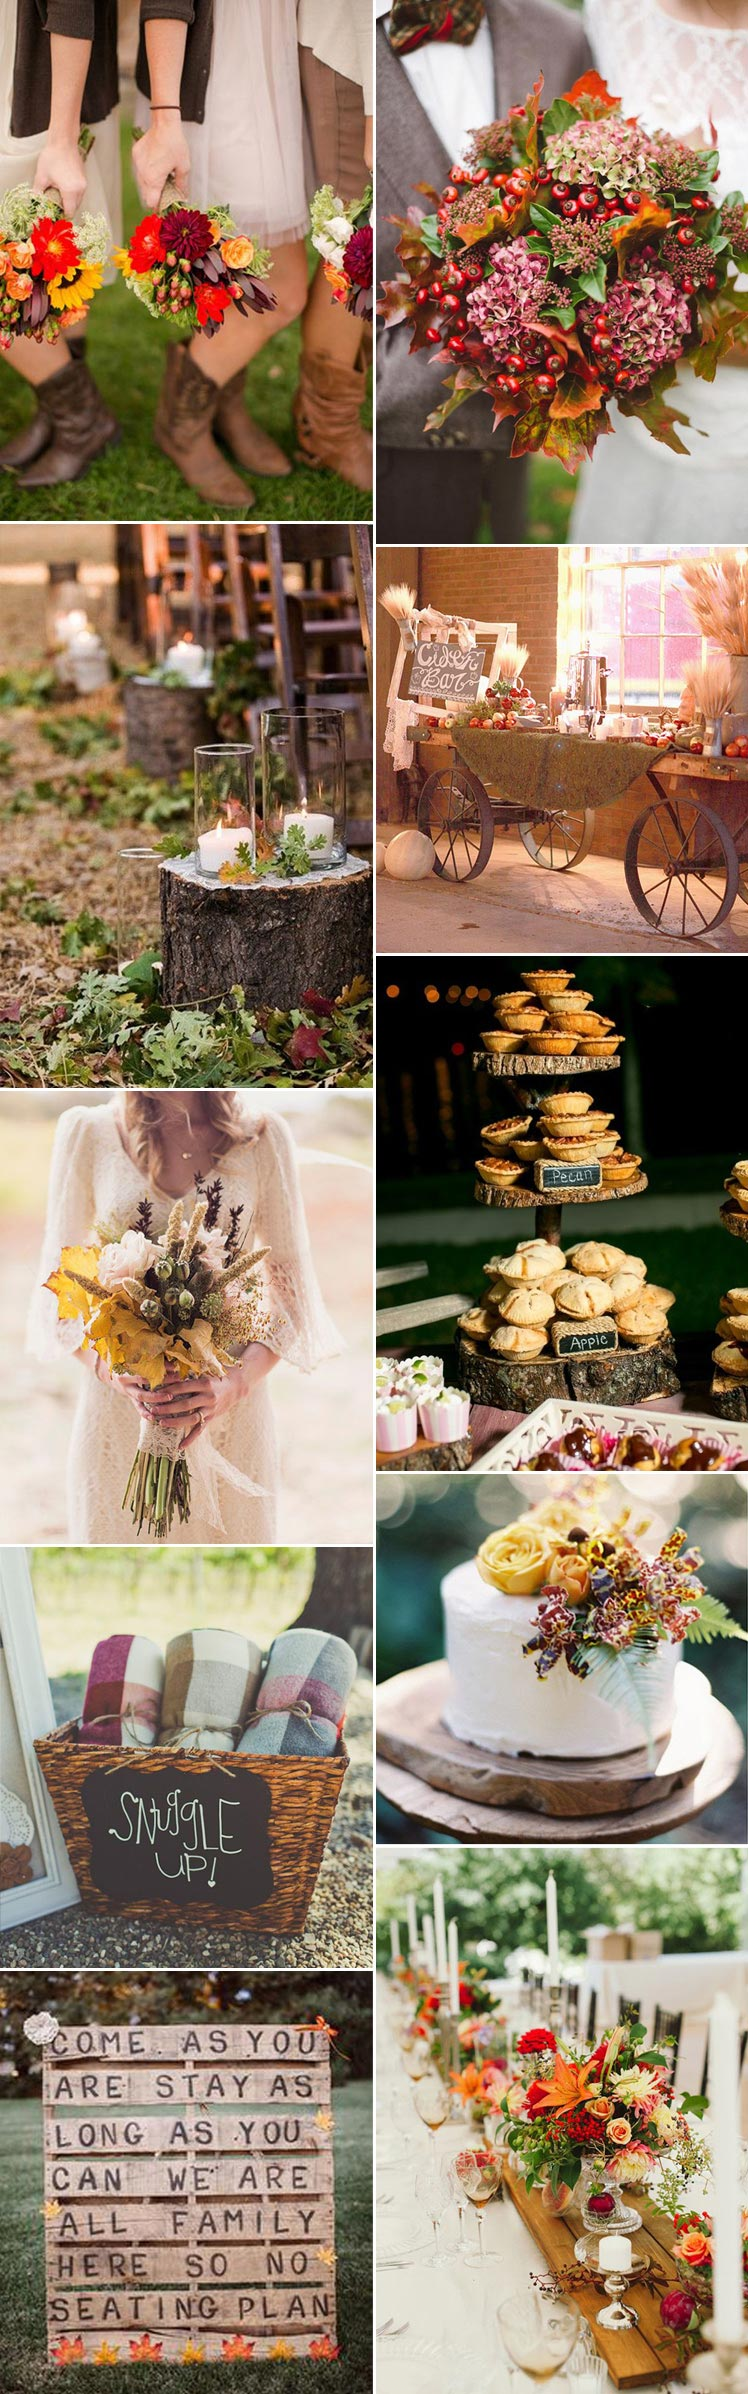 explore autumn ideas for a fall wedding